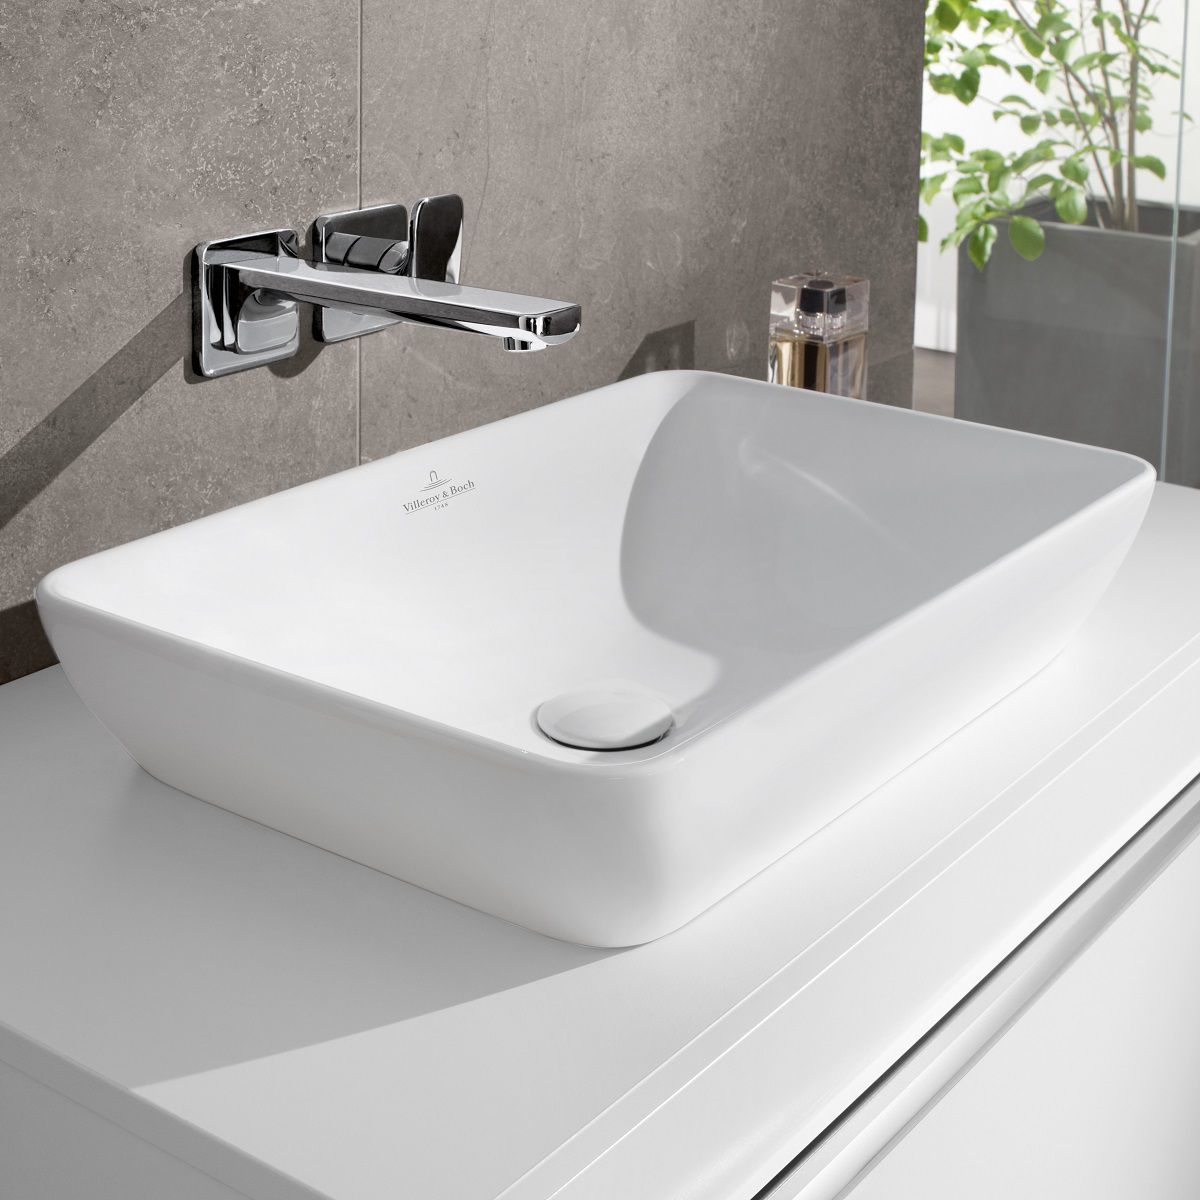 Villeroy and Boch Venticello Countertop Basin